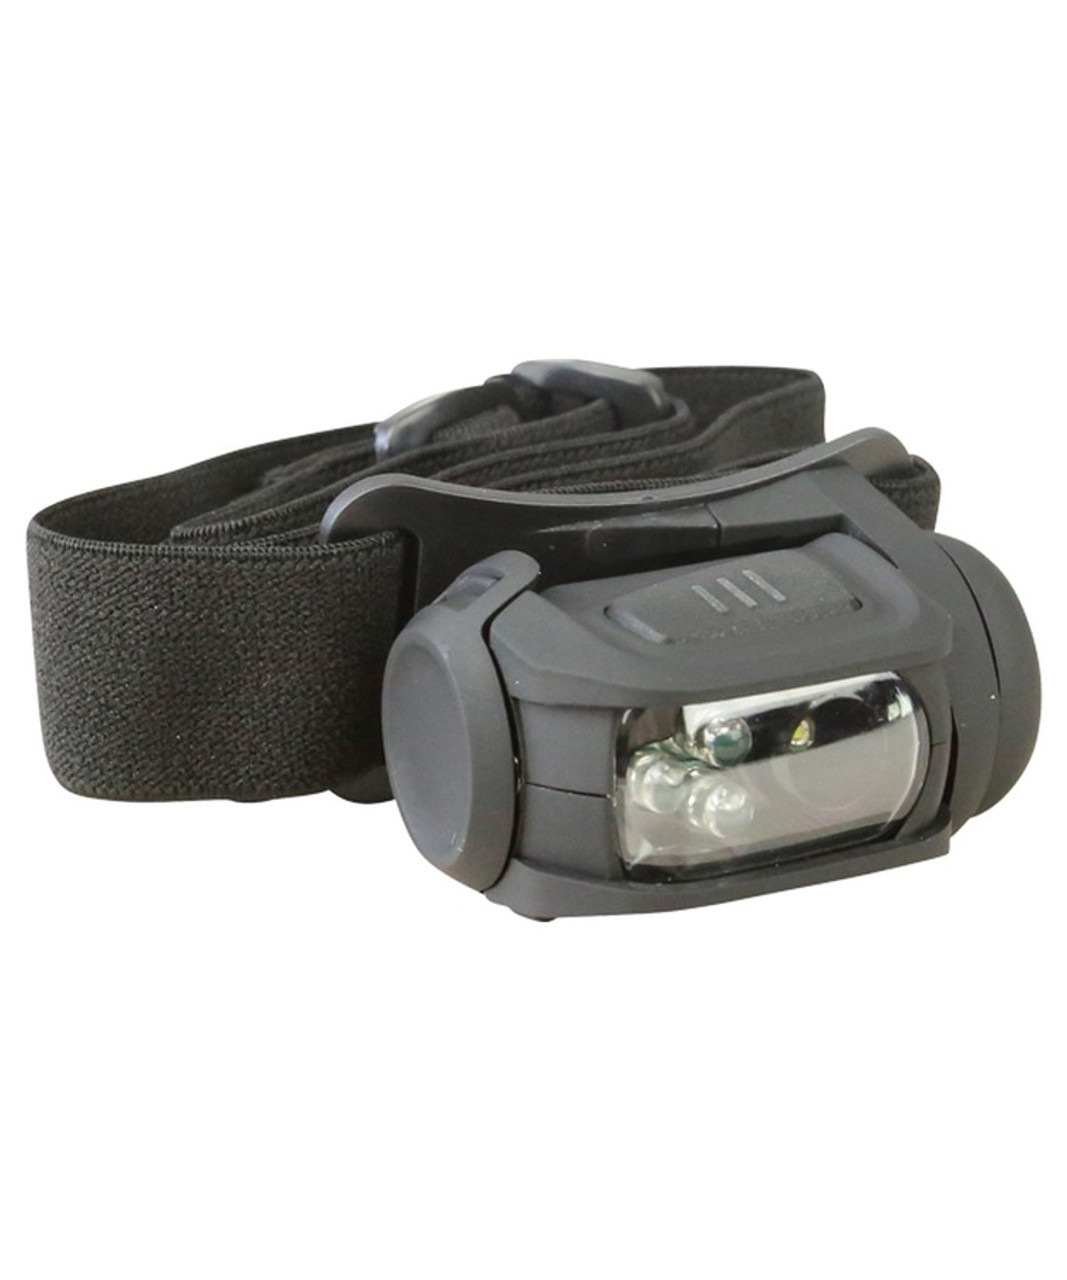 Predator Headlamp II - Stealth Black